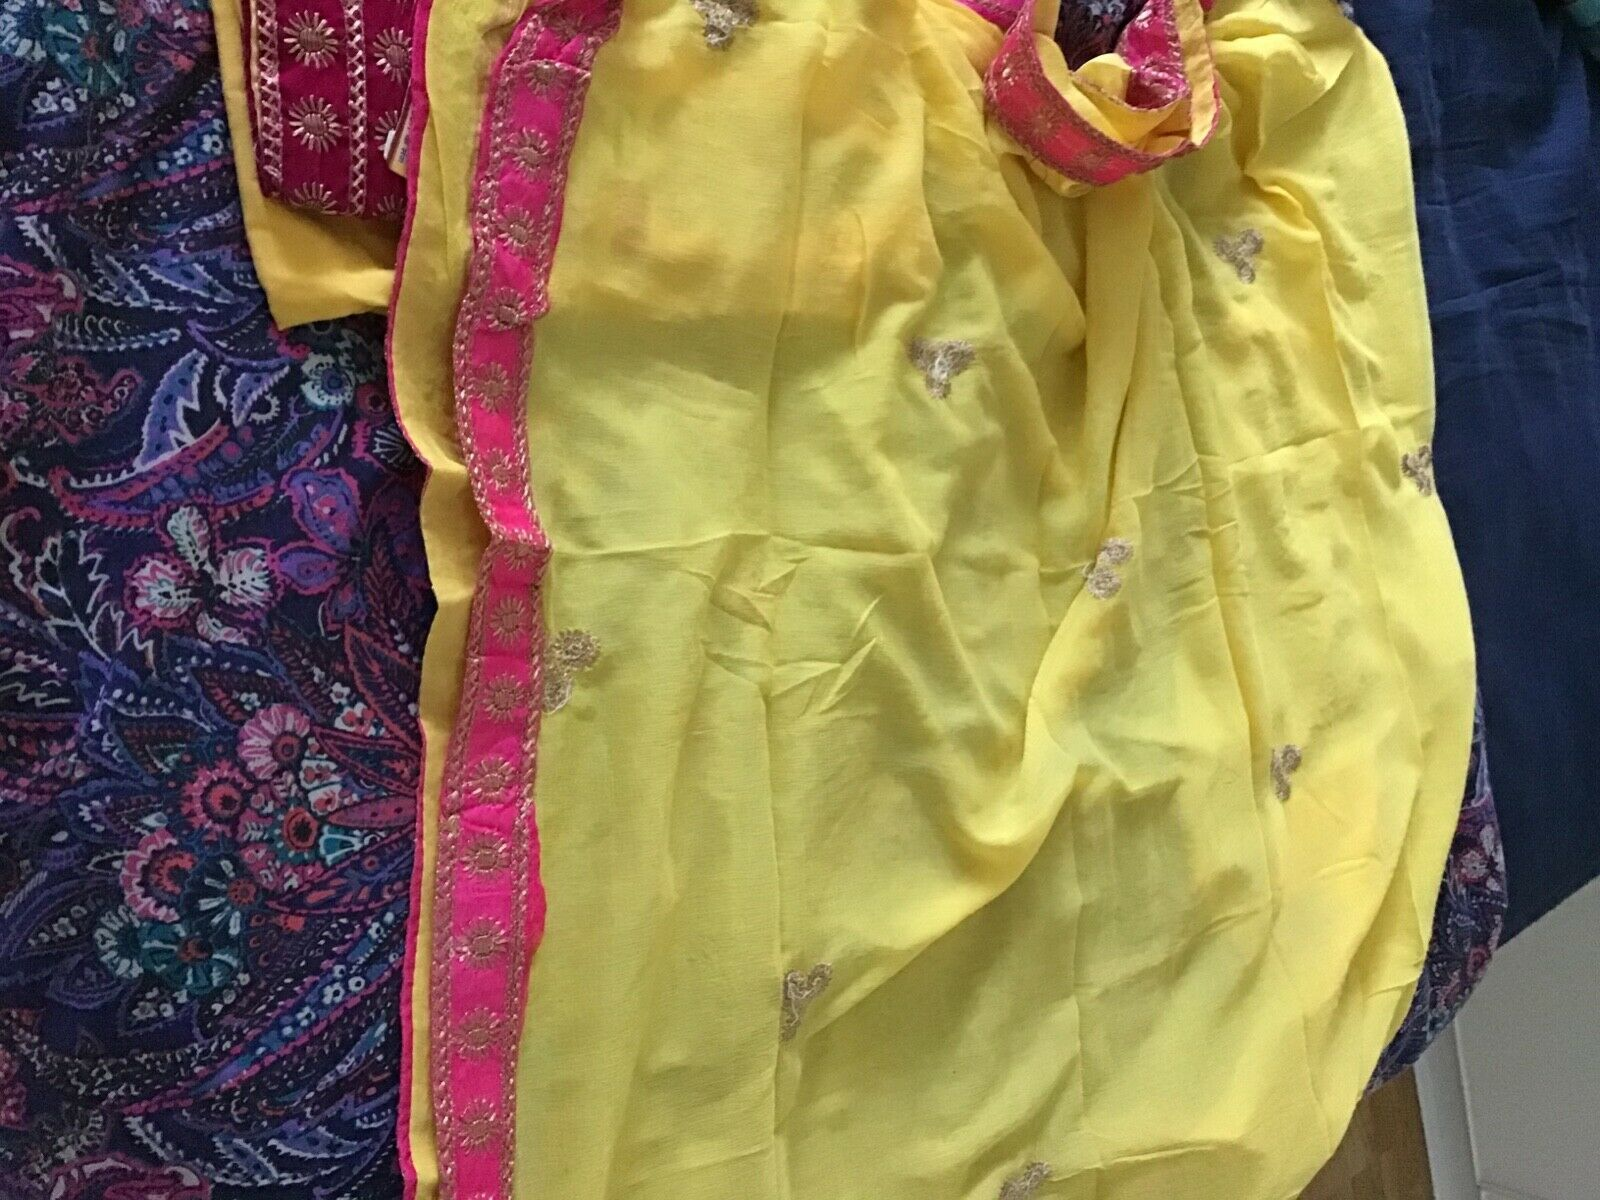 Unstitched salwar kameez fabric of yellow and pink colour